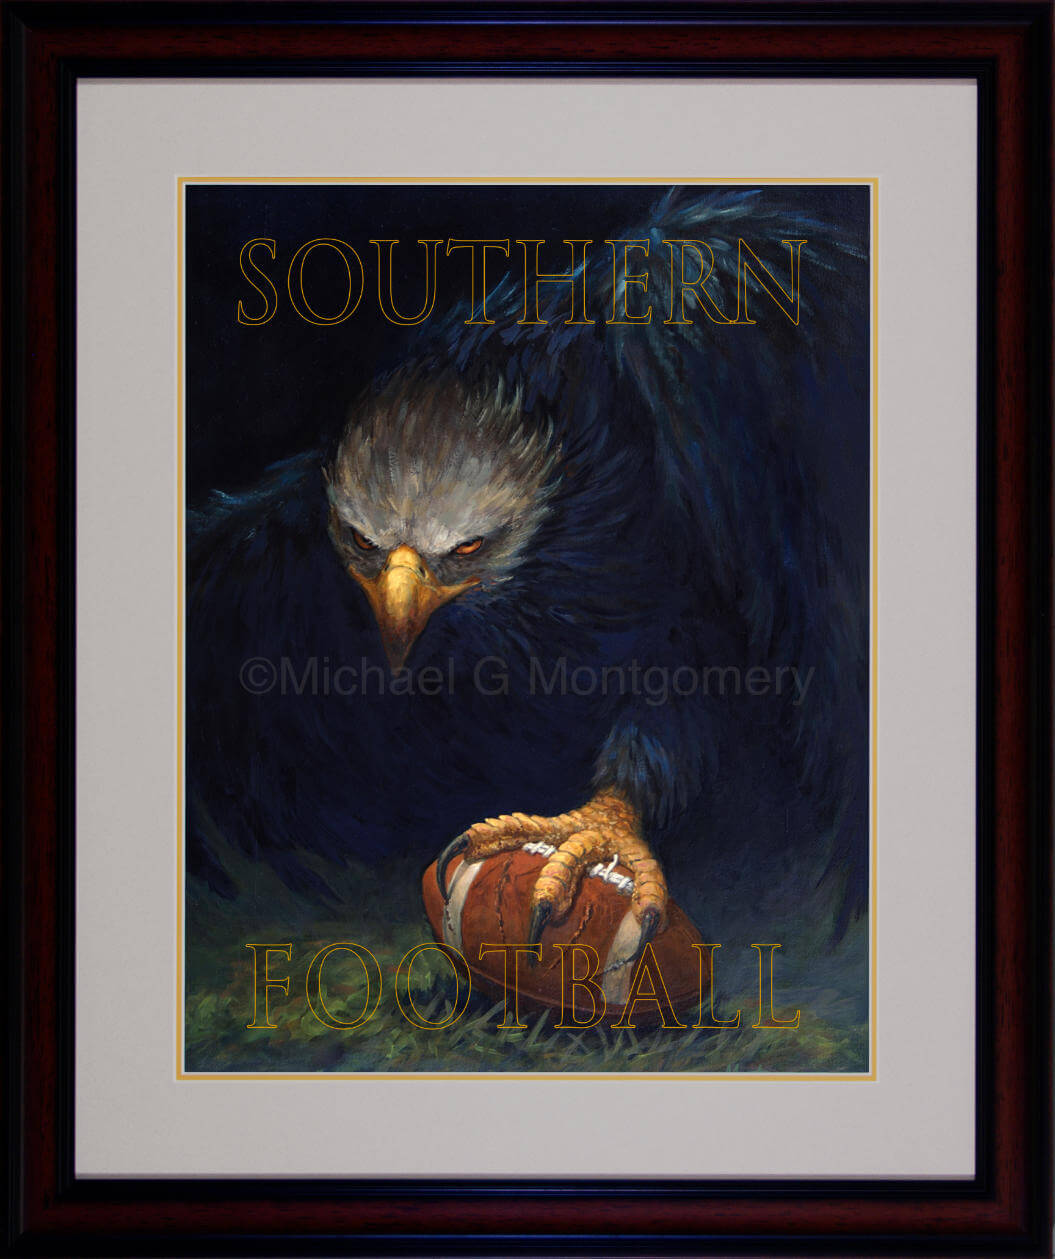 The framed version of an ominous looking eagle protecting a football